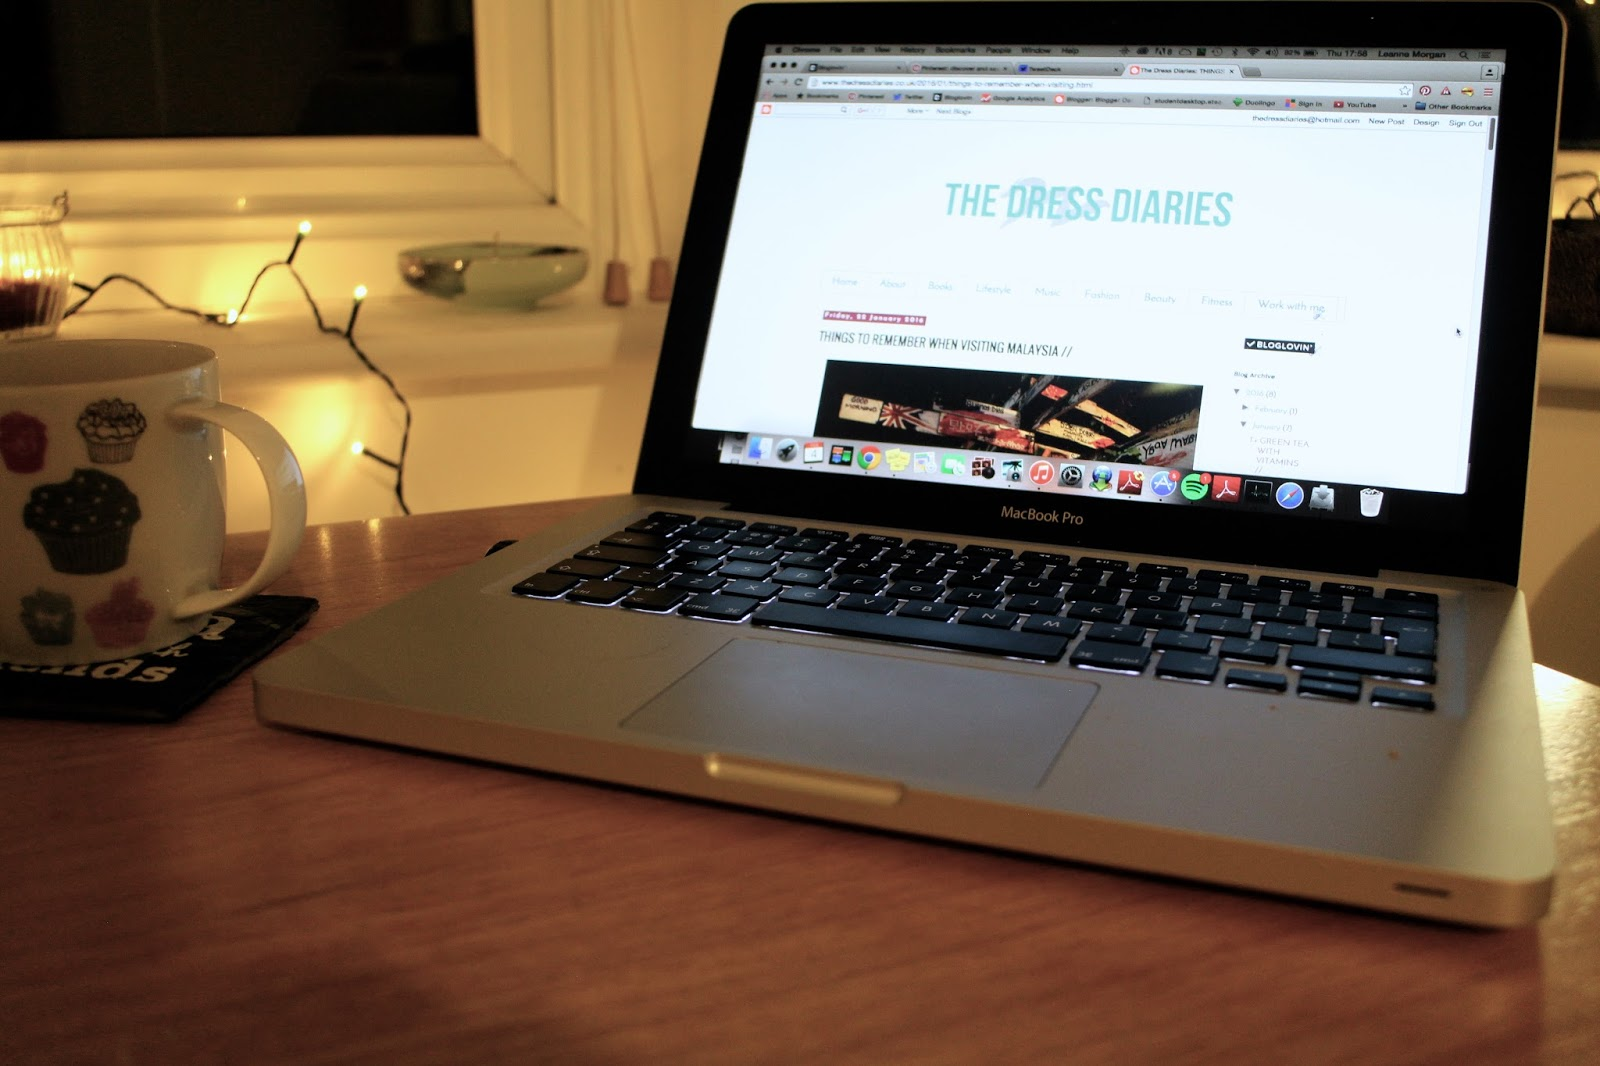 Laptop on the table with The Dress Diaries homepage